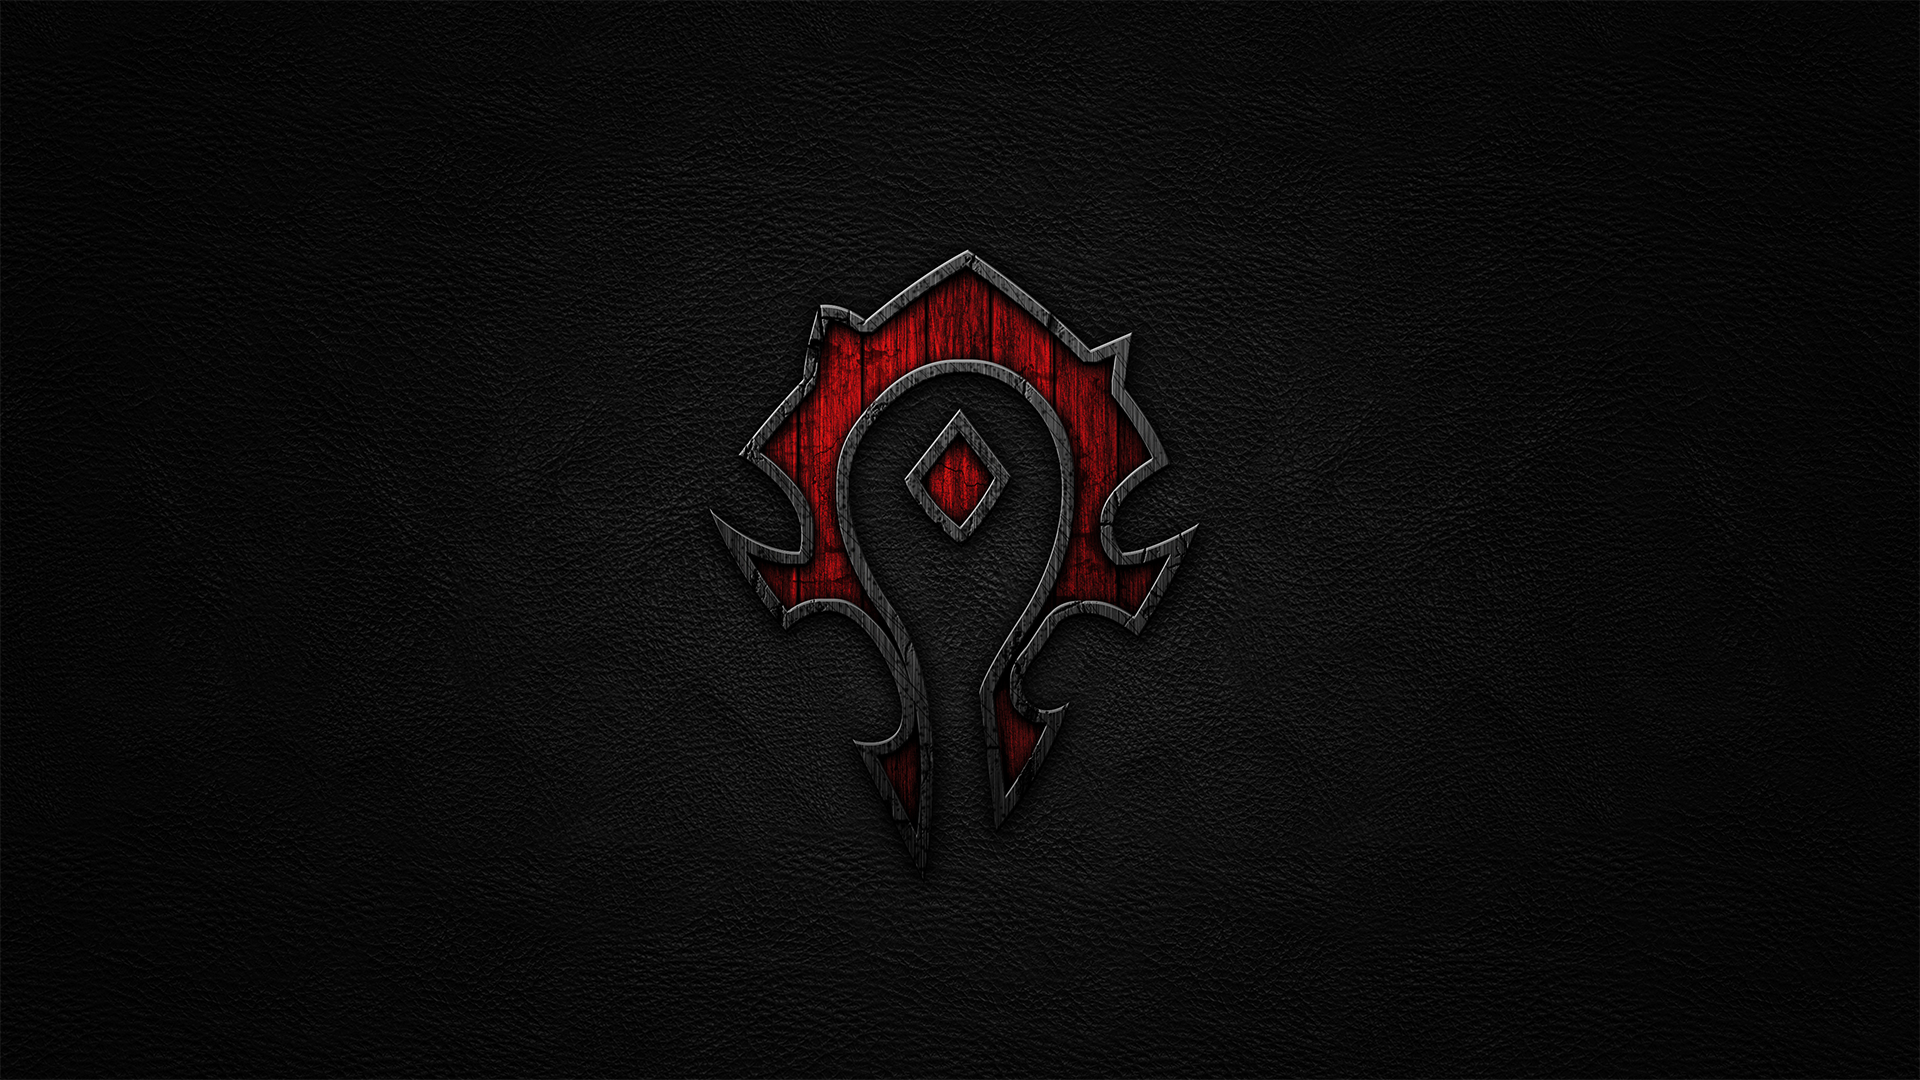 For The Horde Free 1080p Download By Kobashihd On Deviantart